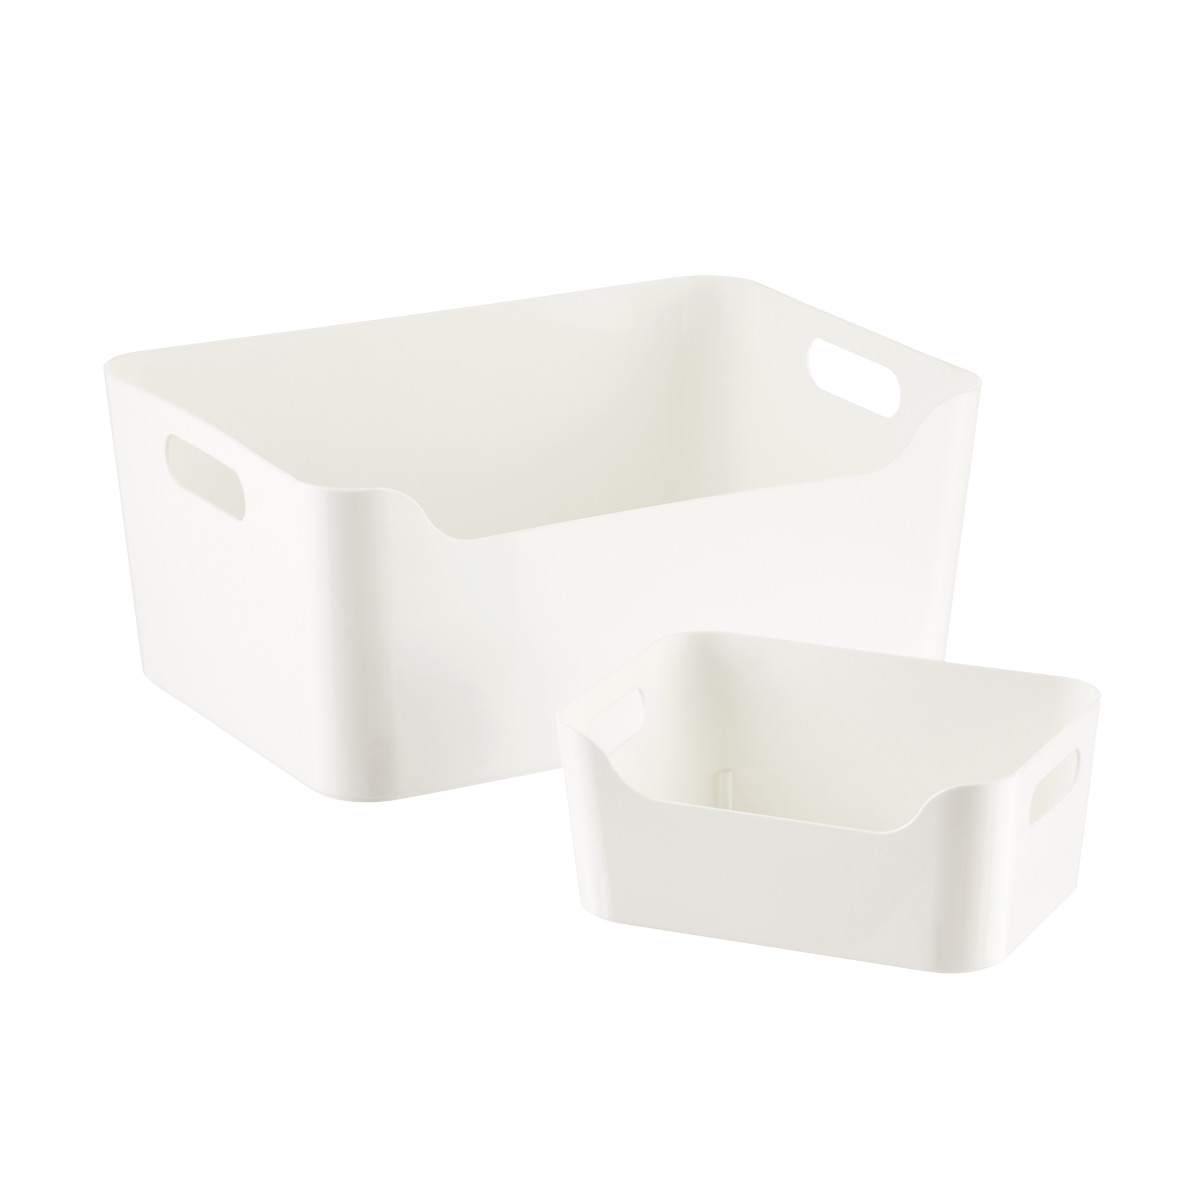 Superbe White Plastic Storage Bins With Handles